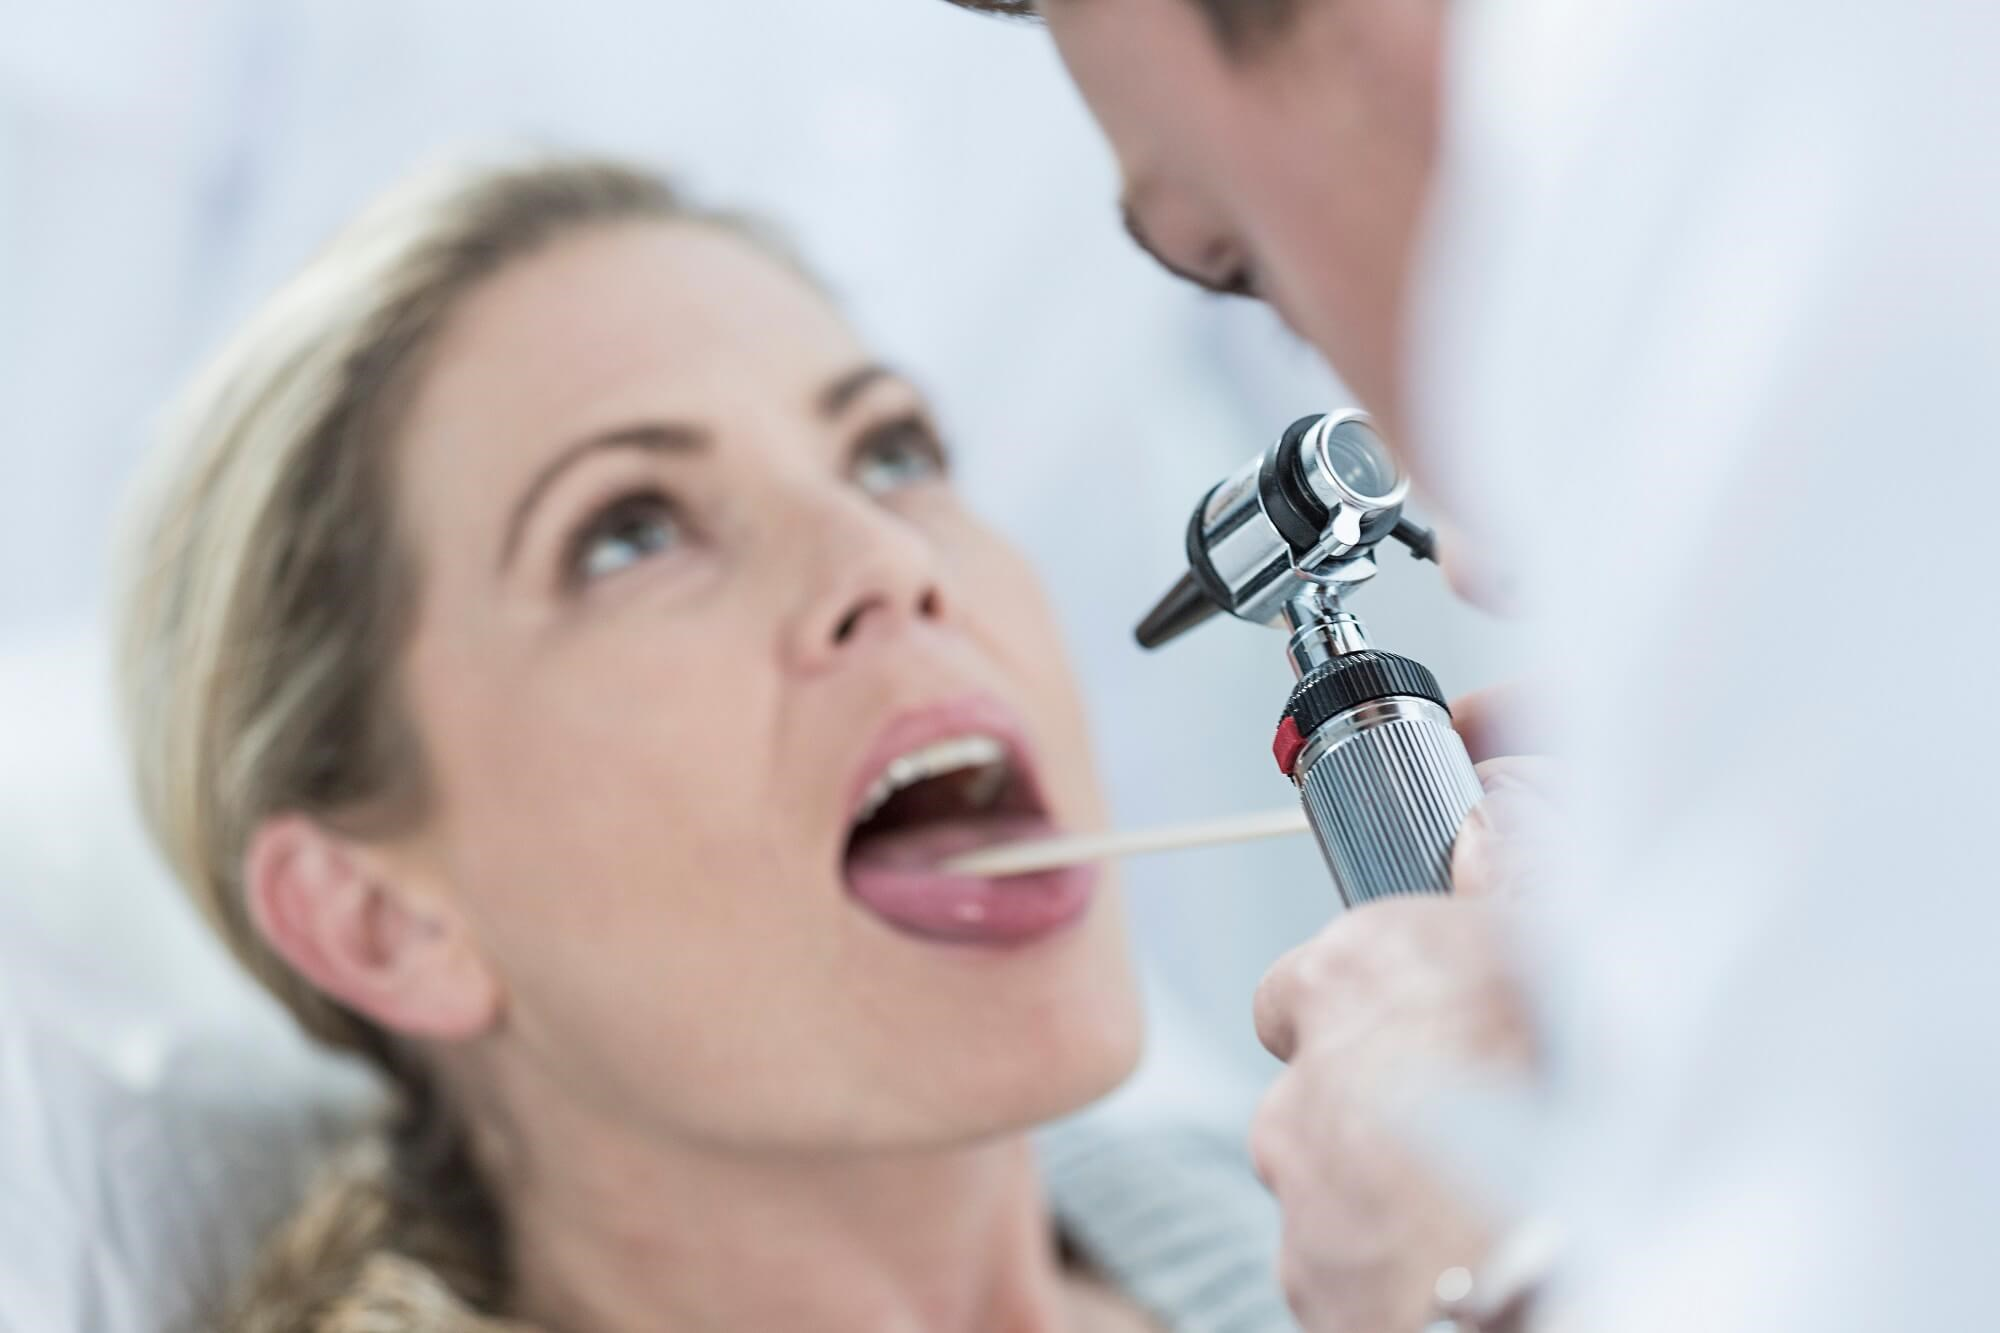 Diagnosis and Management of Headaches: The Otolaryngologist's Role